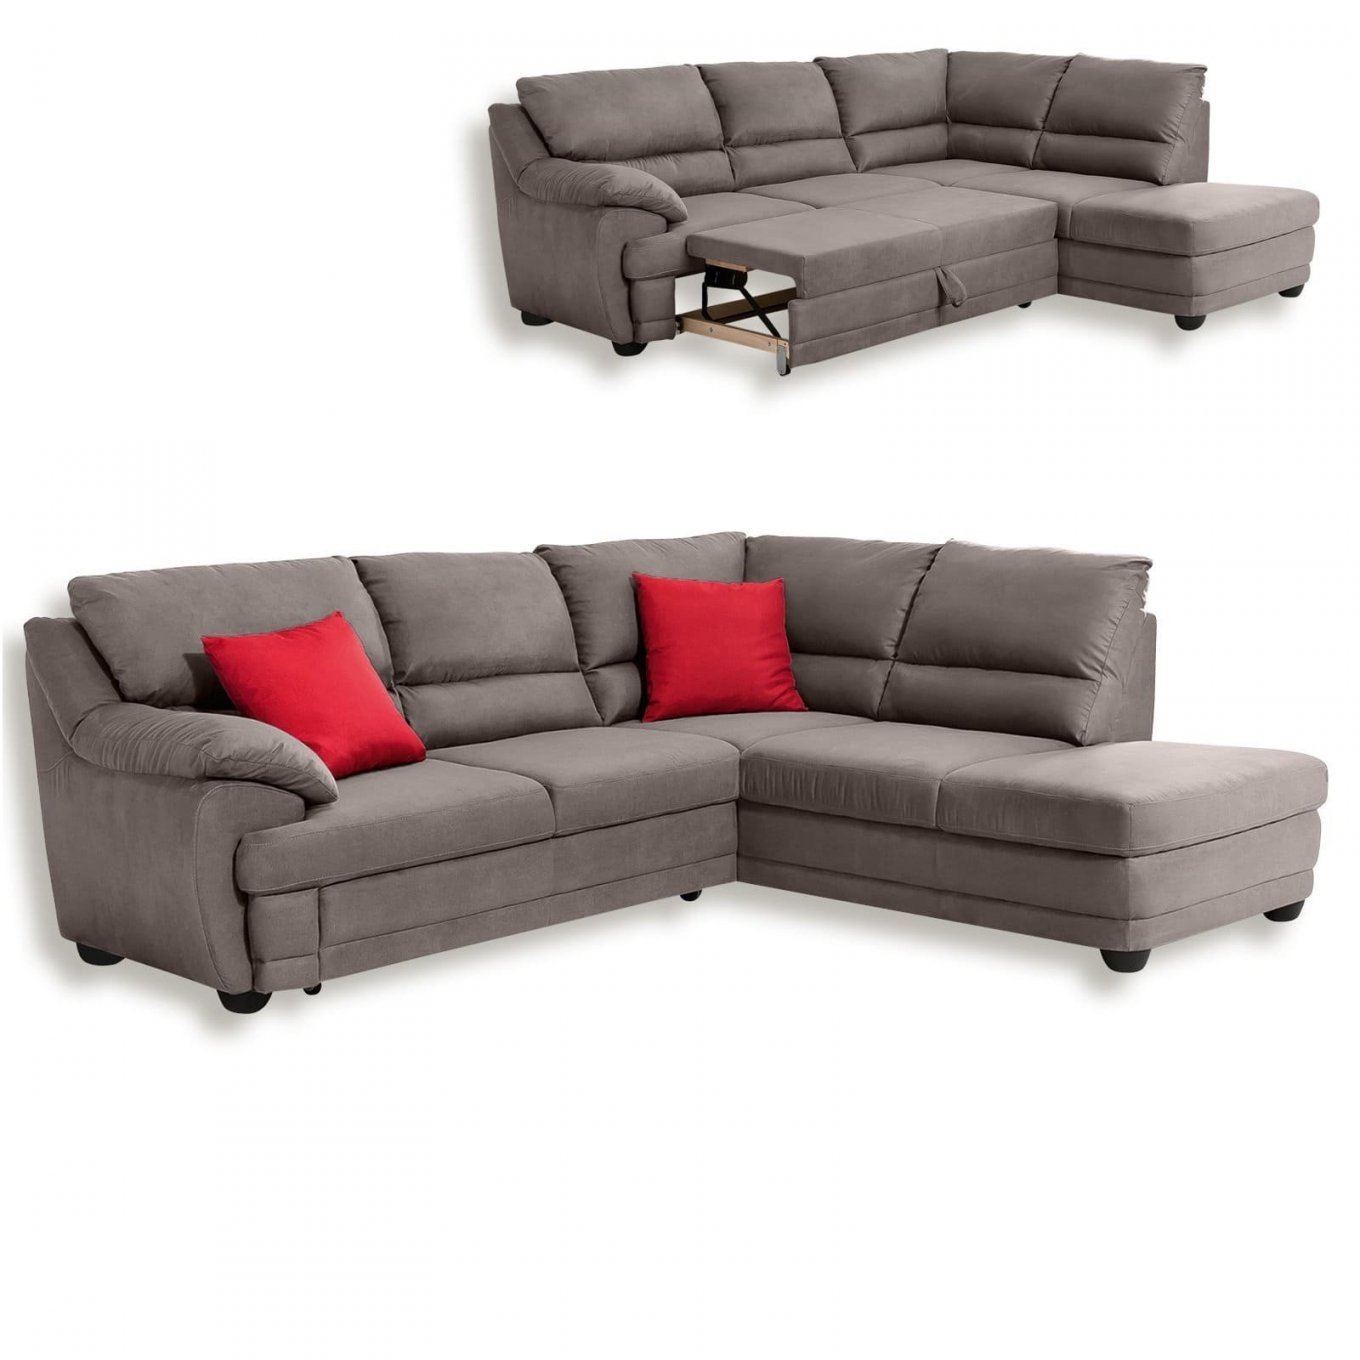 2 Sitzer City Sofa Mit Relaxfunktion Sofa Kaufen Roller Elegant Sofa von 2 Sitzer City Sofa Mit Relaxfunktion Photo